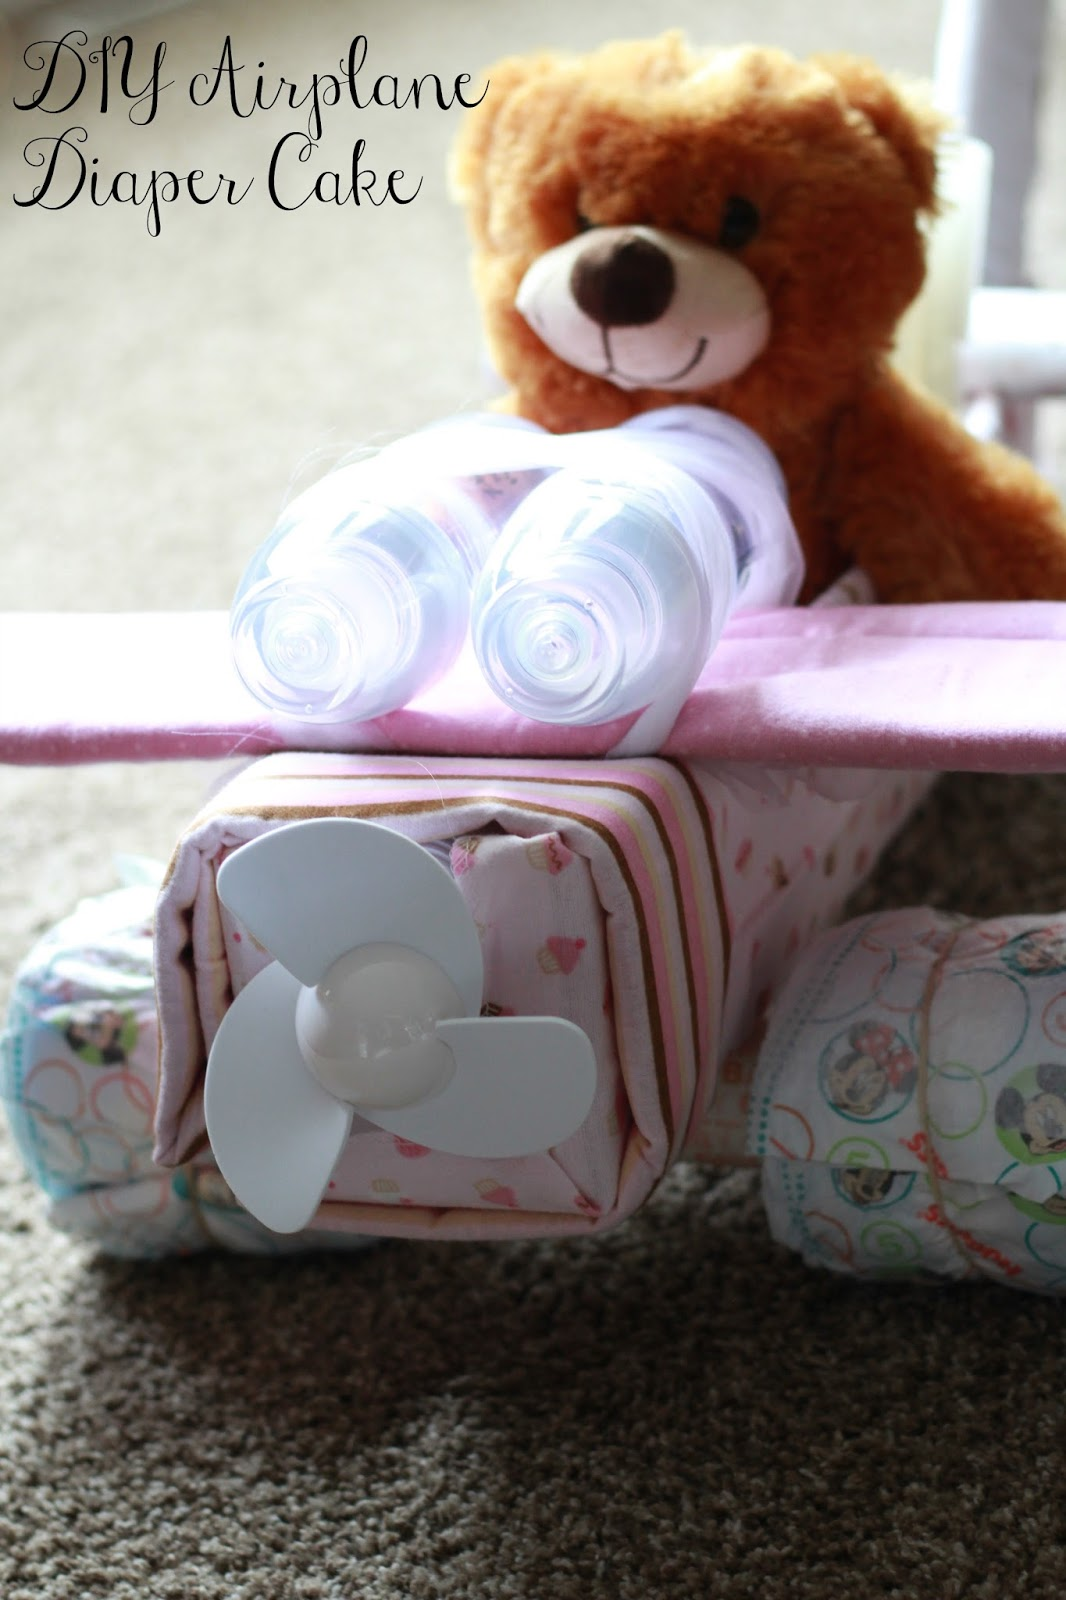 DIY Airplane Diaper Cake Perfect for baby shower gifts